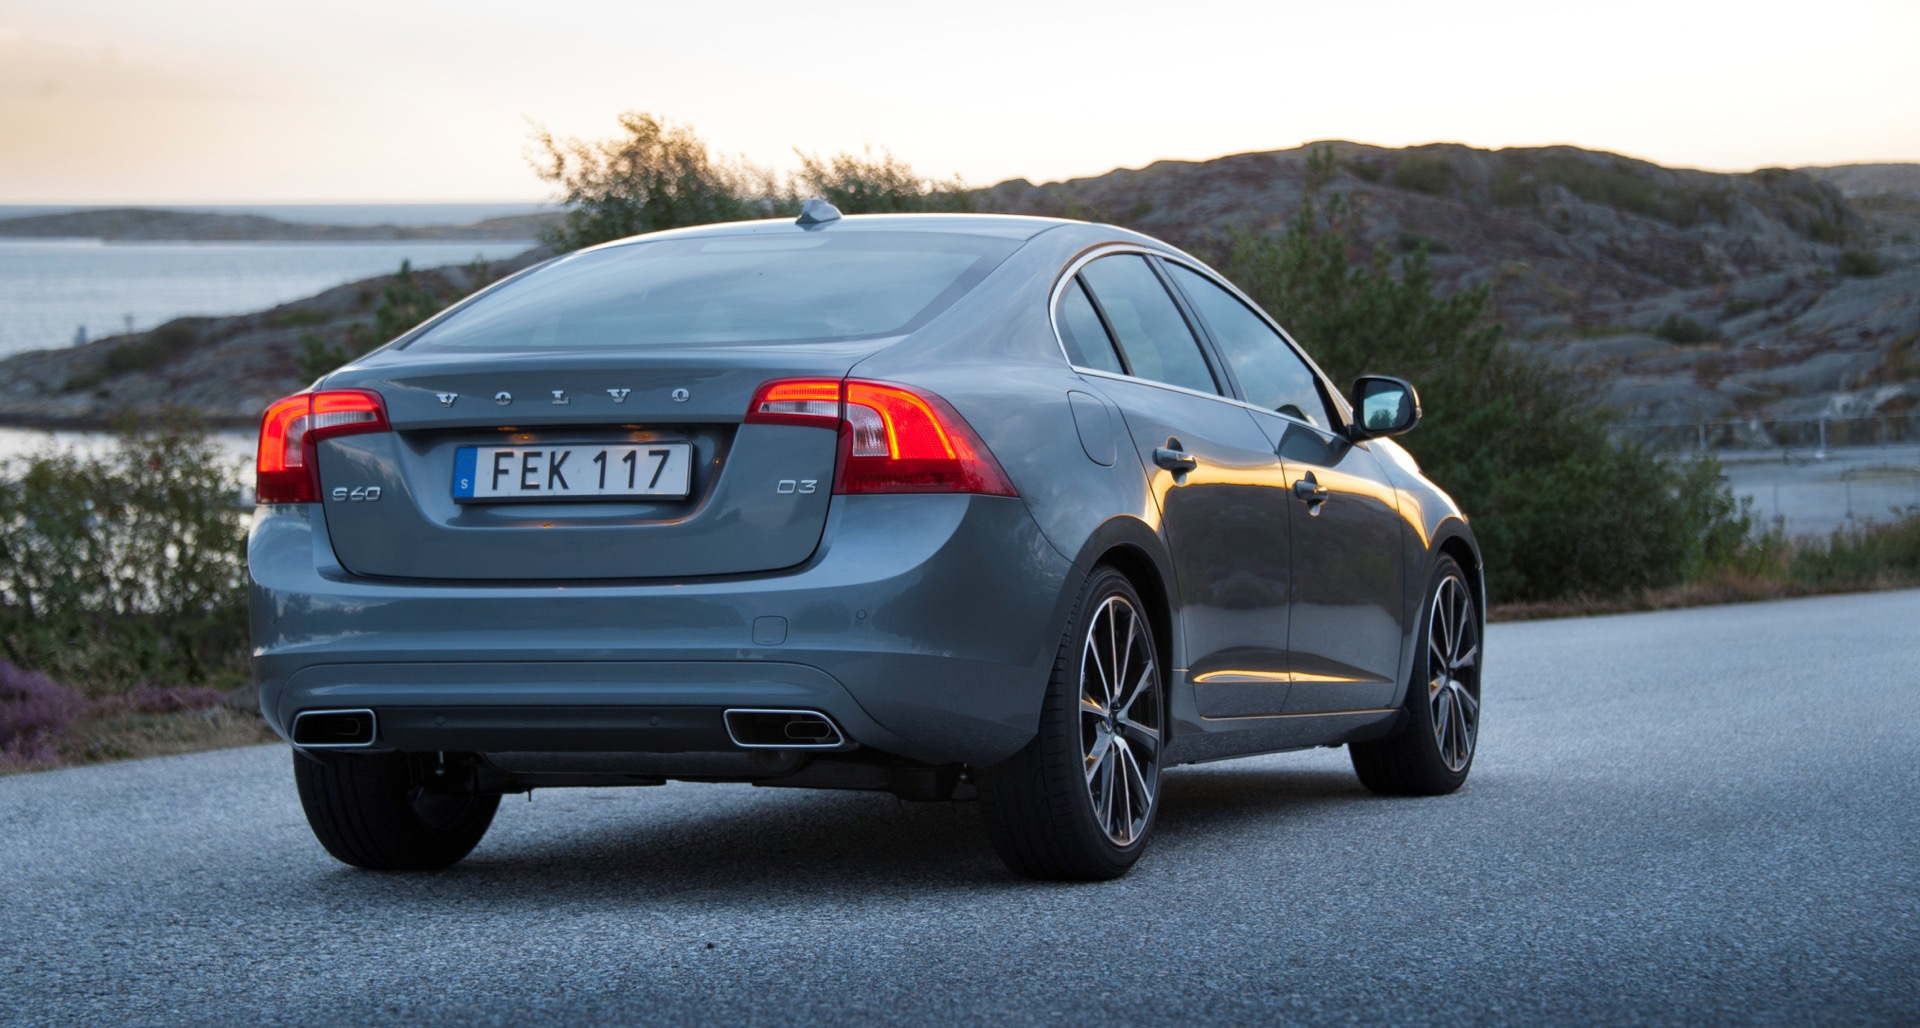 Volvo S60 Model Year 2016 -  2015, 2016, 2016 S60, 2017, 2017 S60, 2018, 2018 S60, Exterior, Images, S60, Volvo